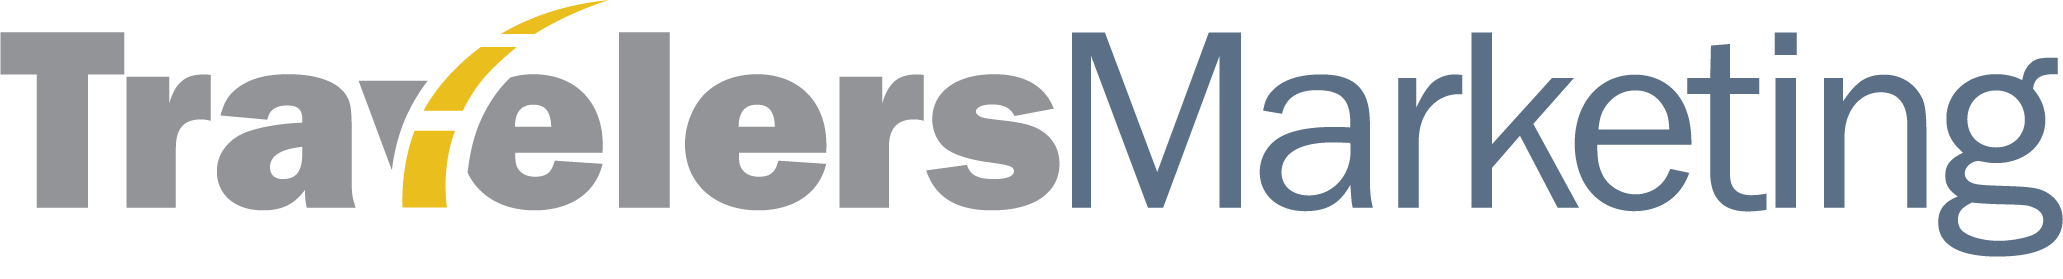 Travelers Marketing Logo